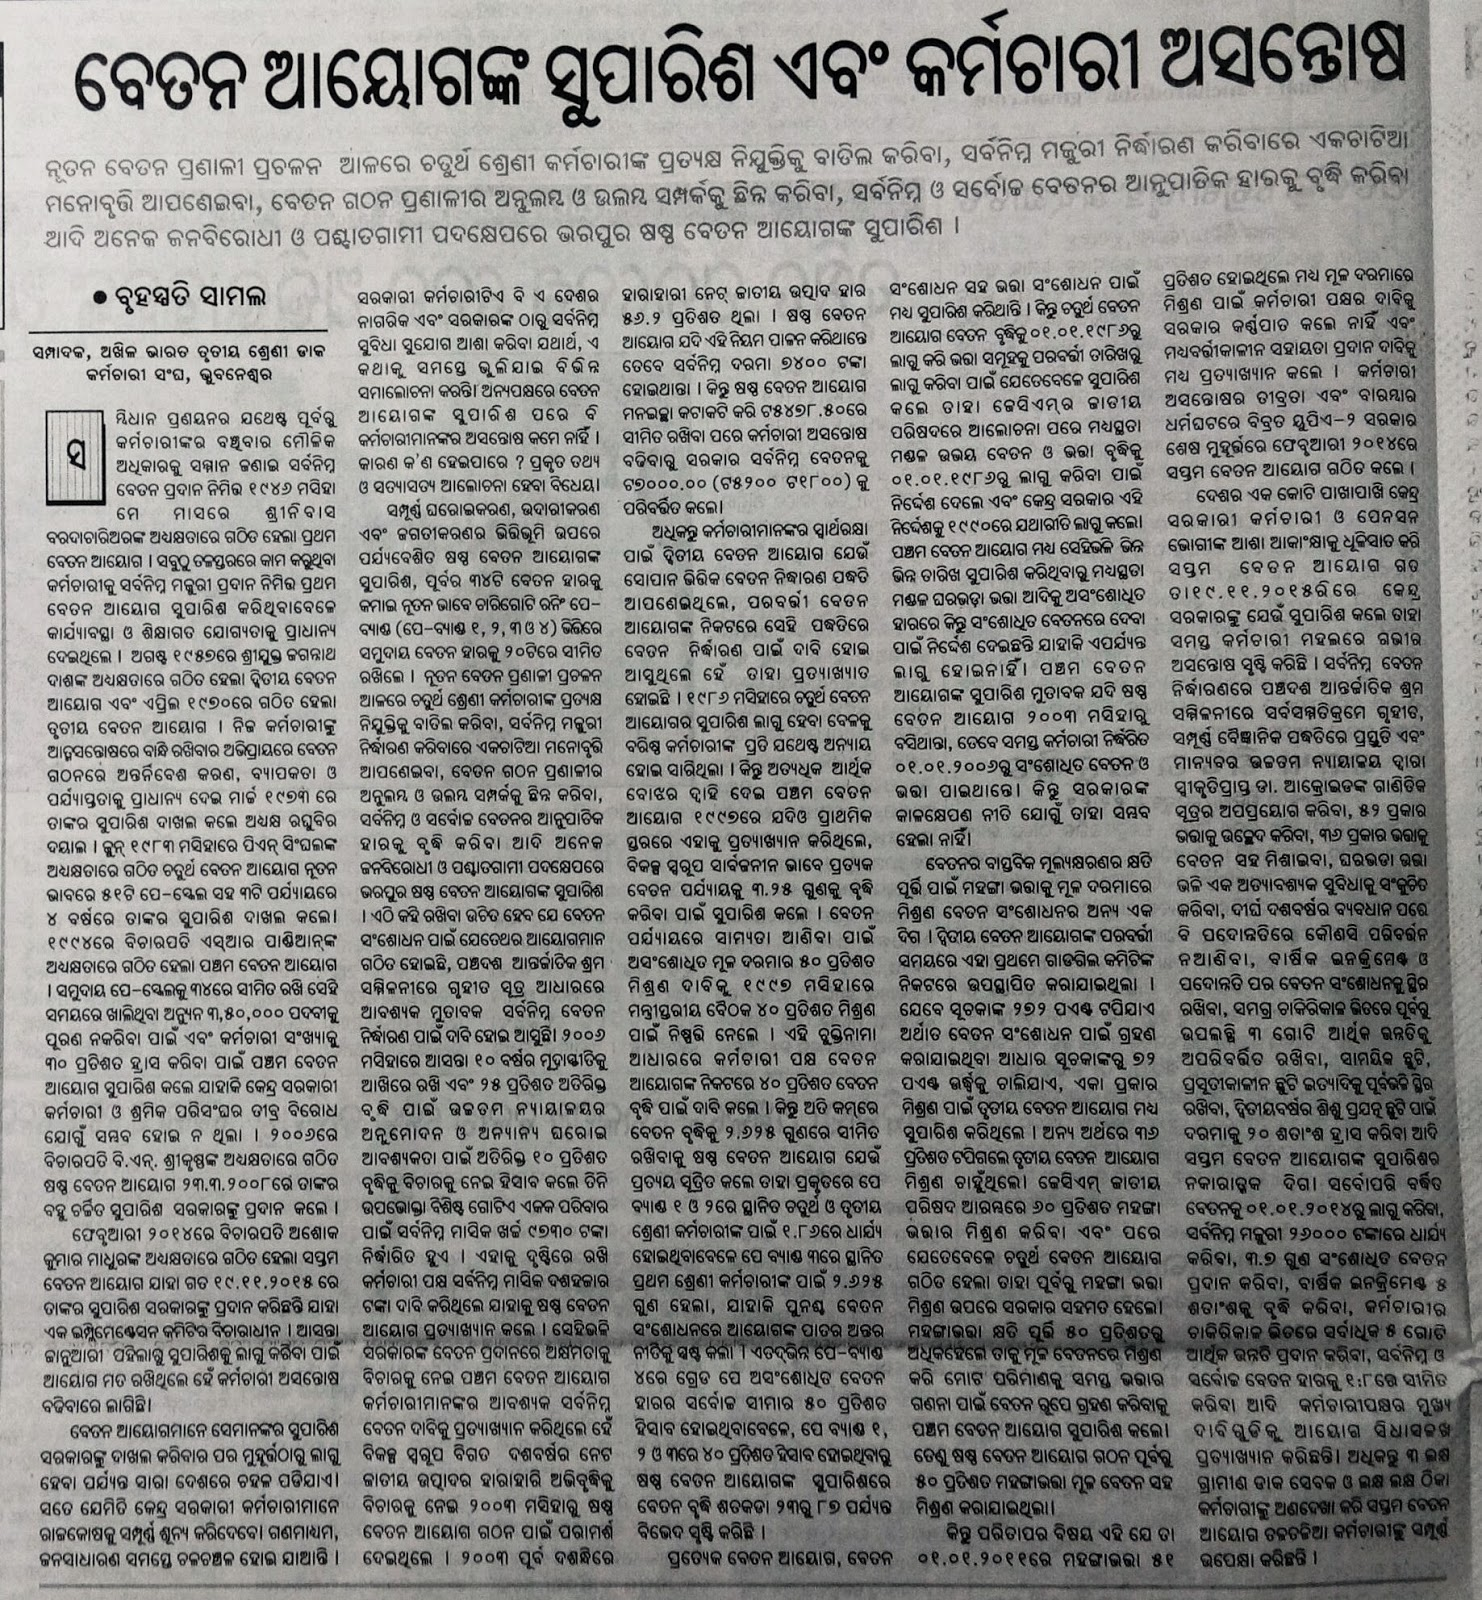 aipeu gr c bhubaneswar odisha recommendations of pay recommendations of pay commissions and employees discontentment an article in odia written by b samal secy aipeu gr c bhubaneswar and published in